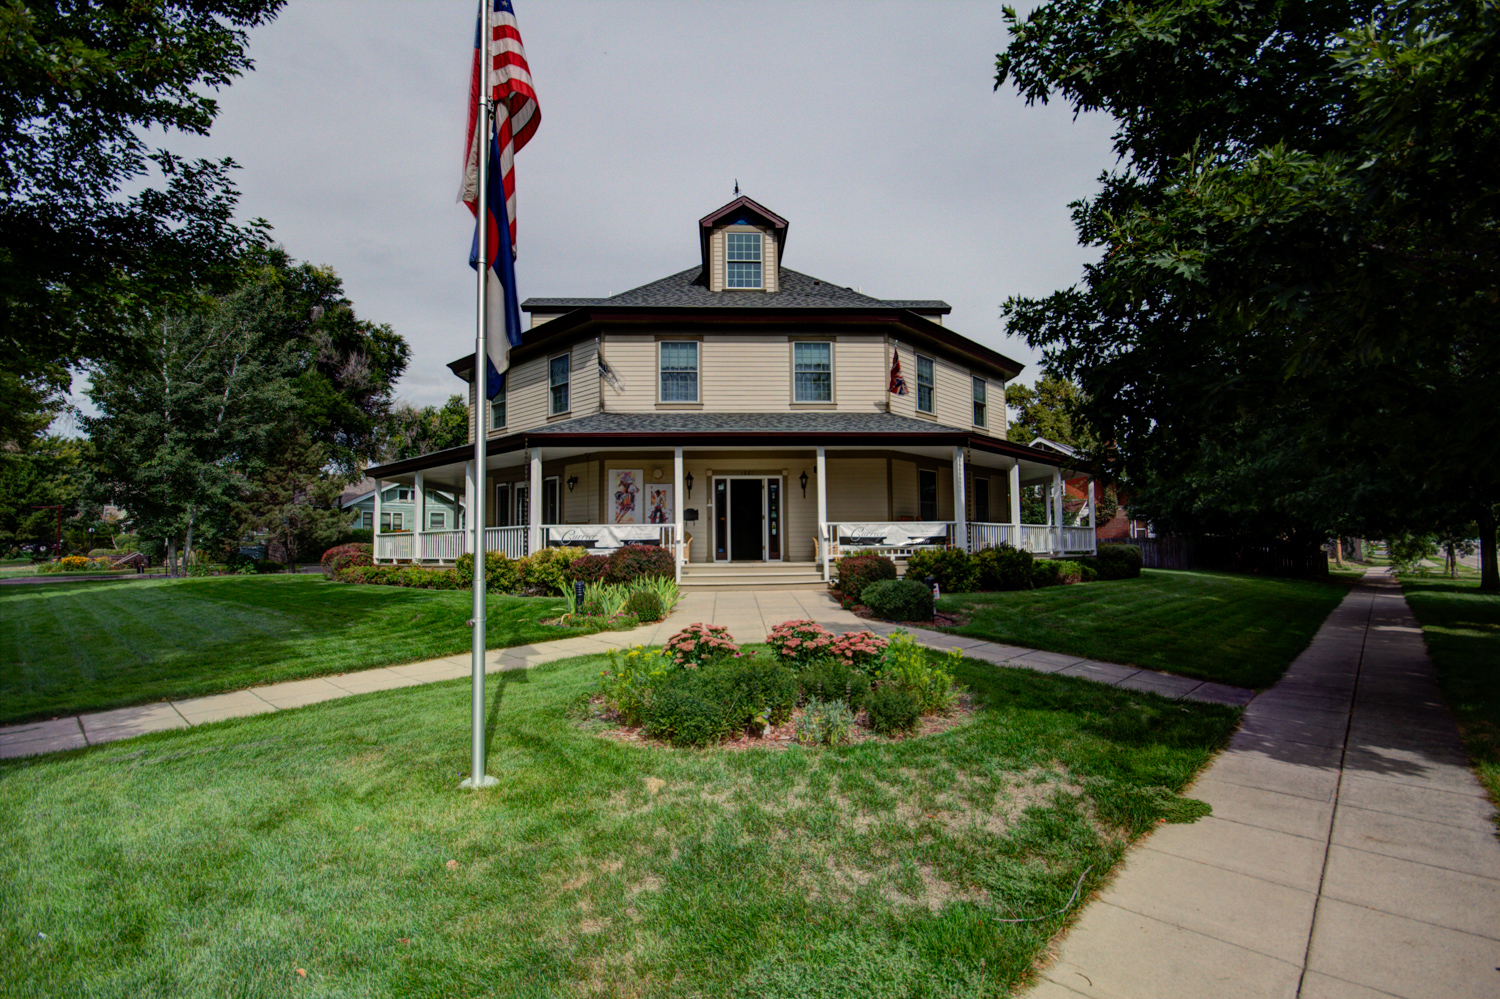 Currier Inn Bed and Breakfast, Greeley CO